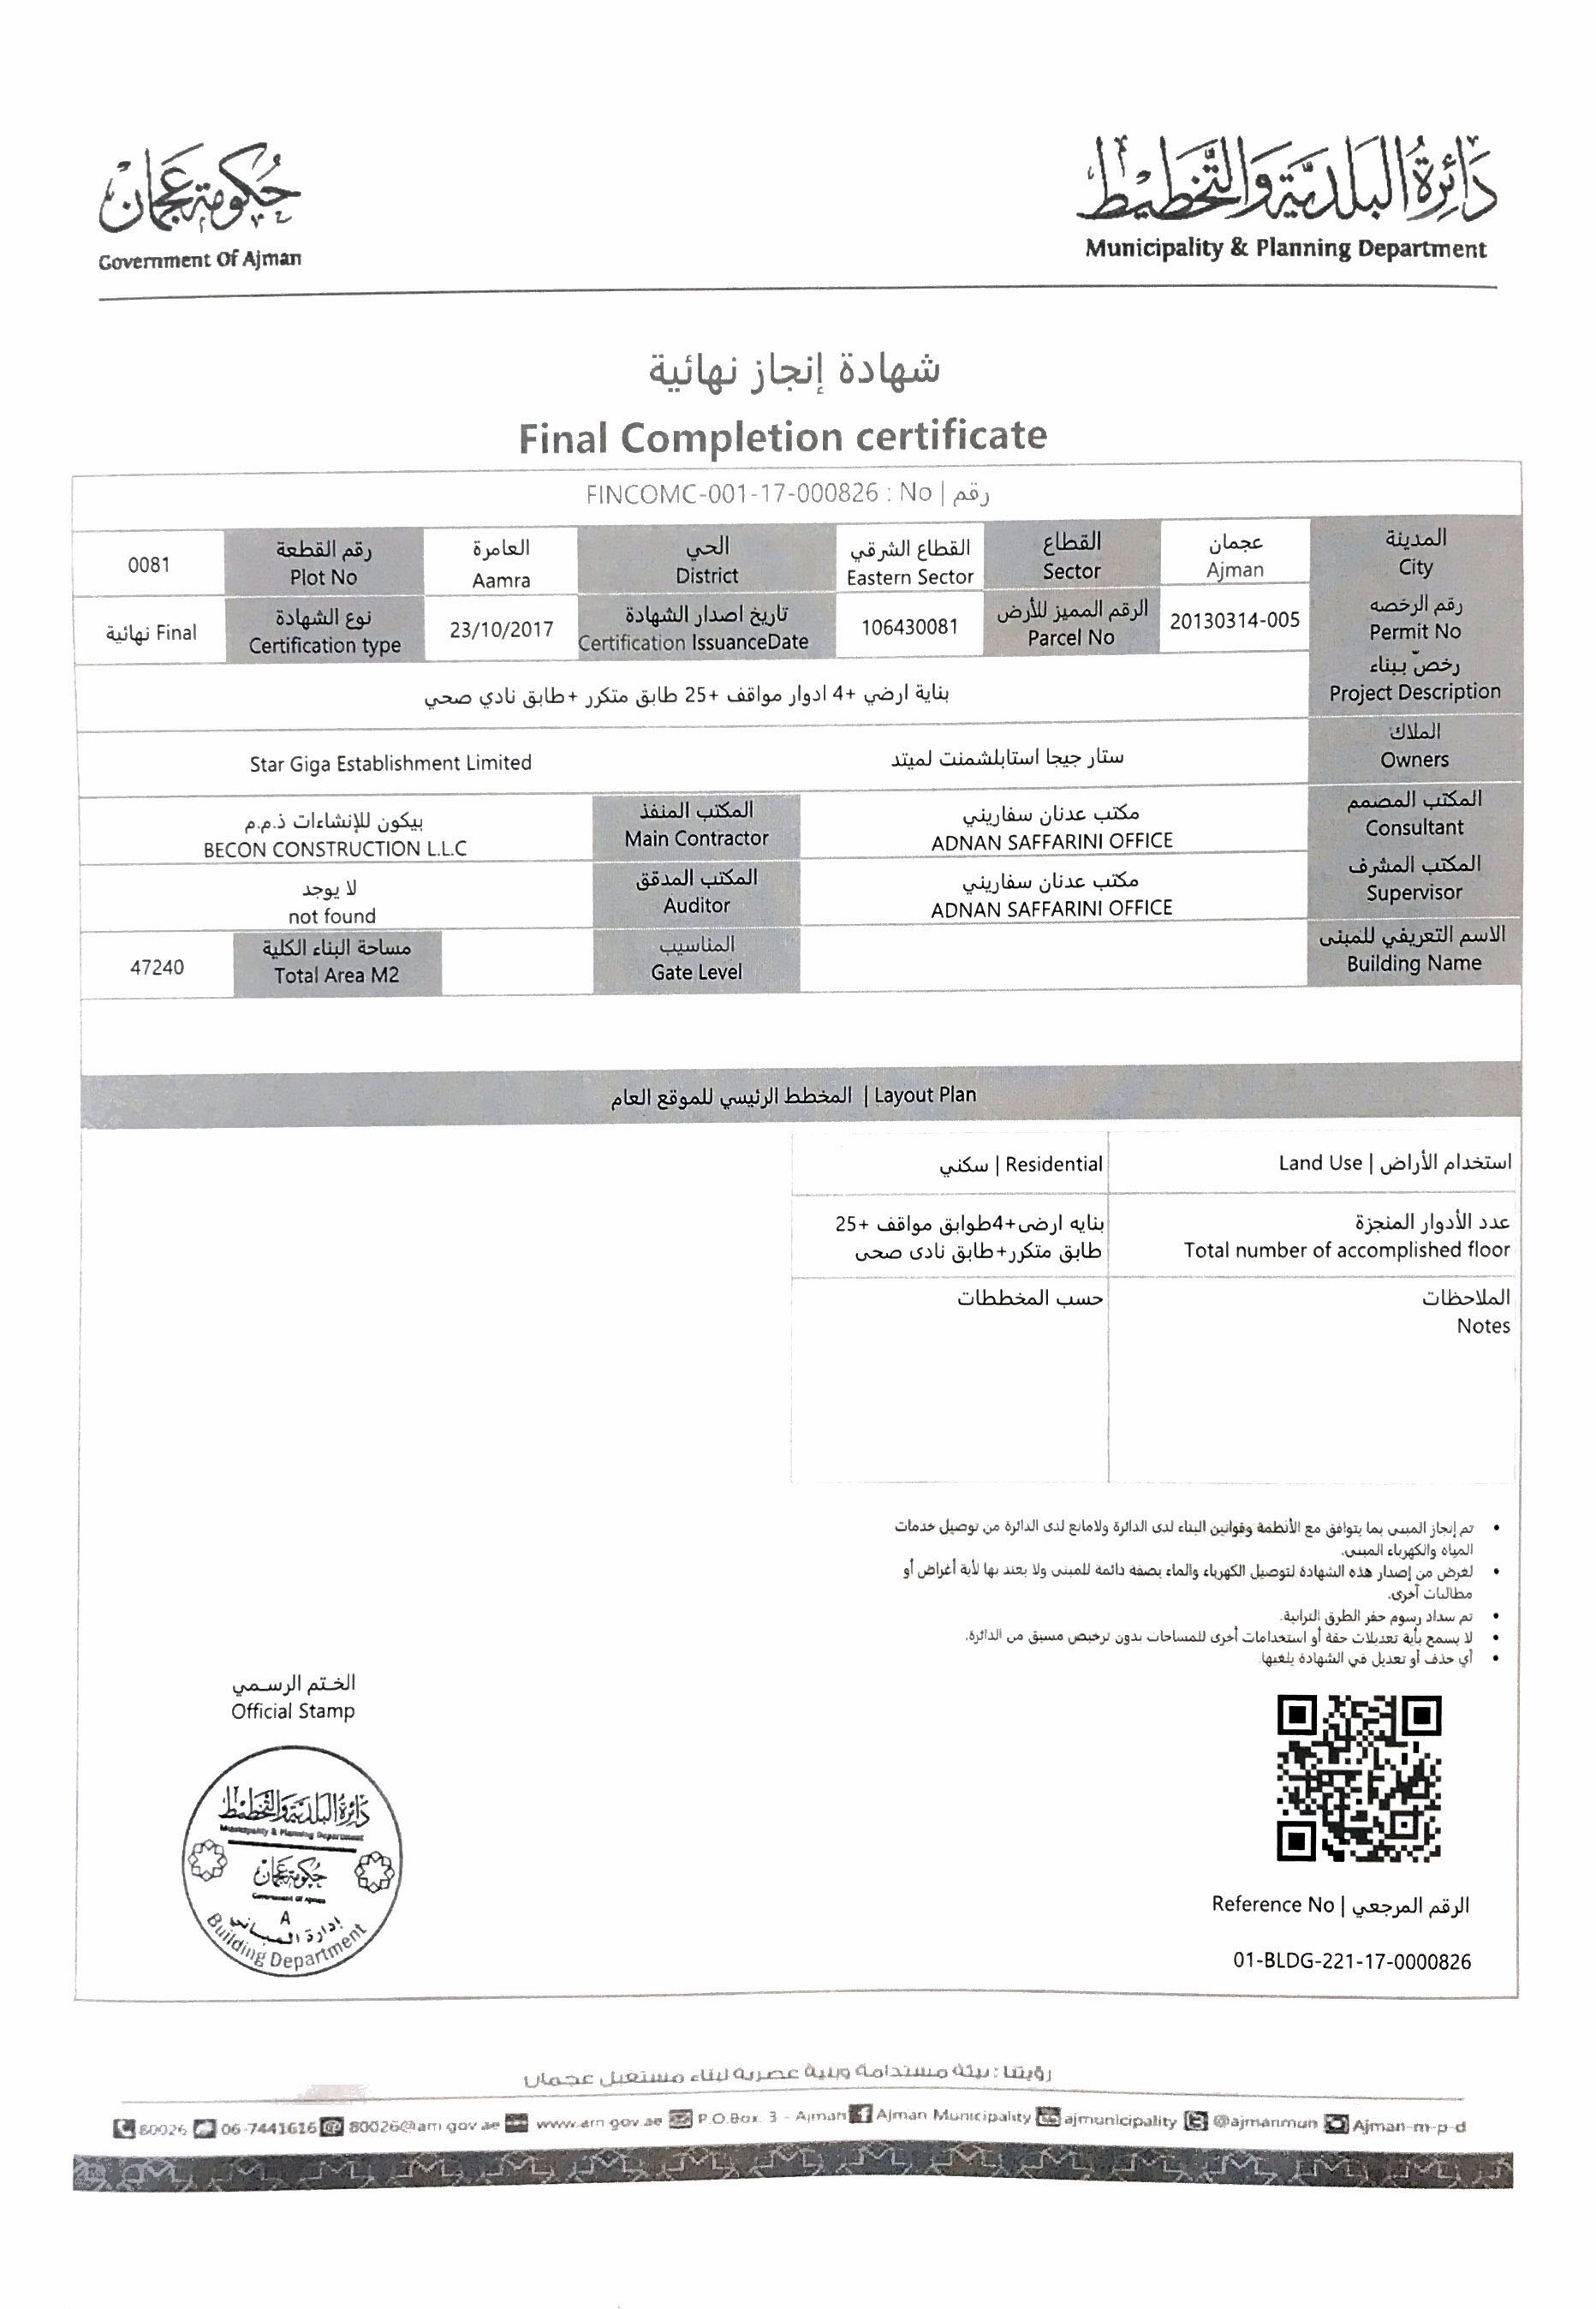 Practical Completion Certificate Template Jct  Mandegar Within Practical Completion Certificate Template Jct